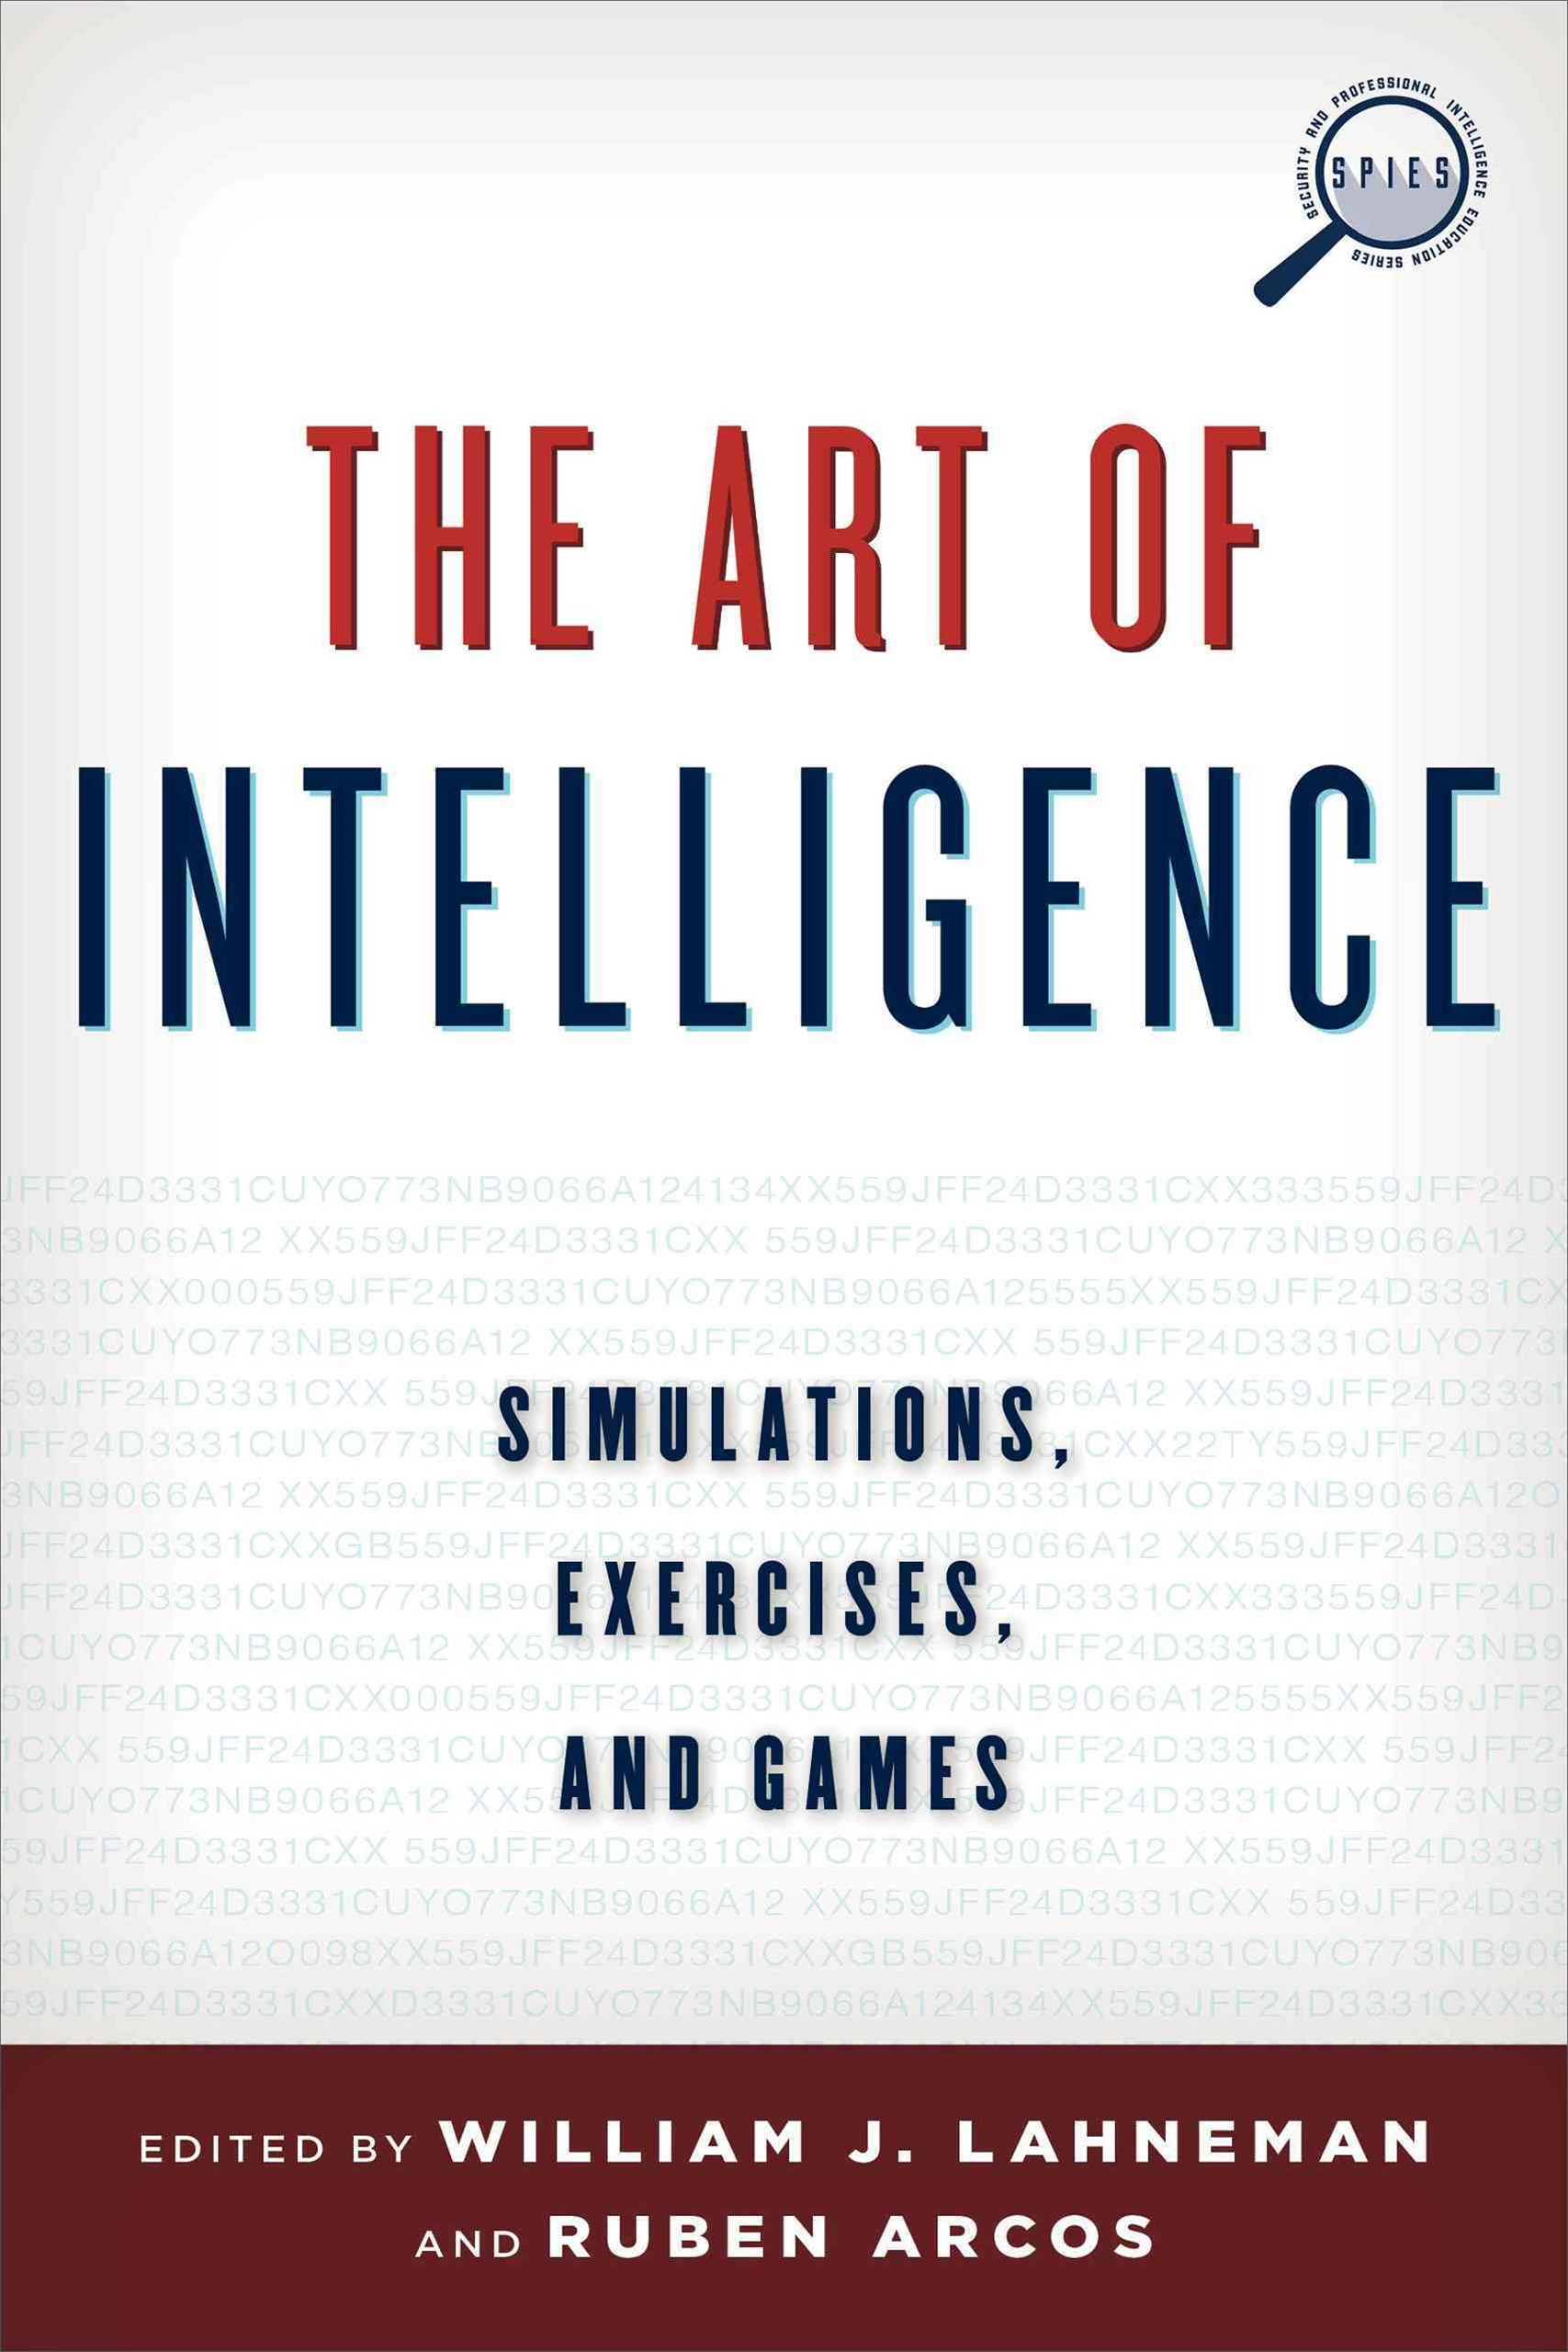 Art of Intelligence